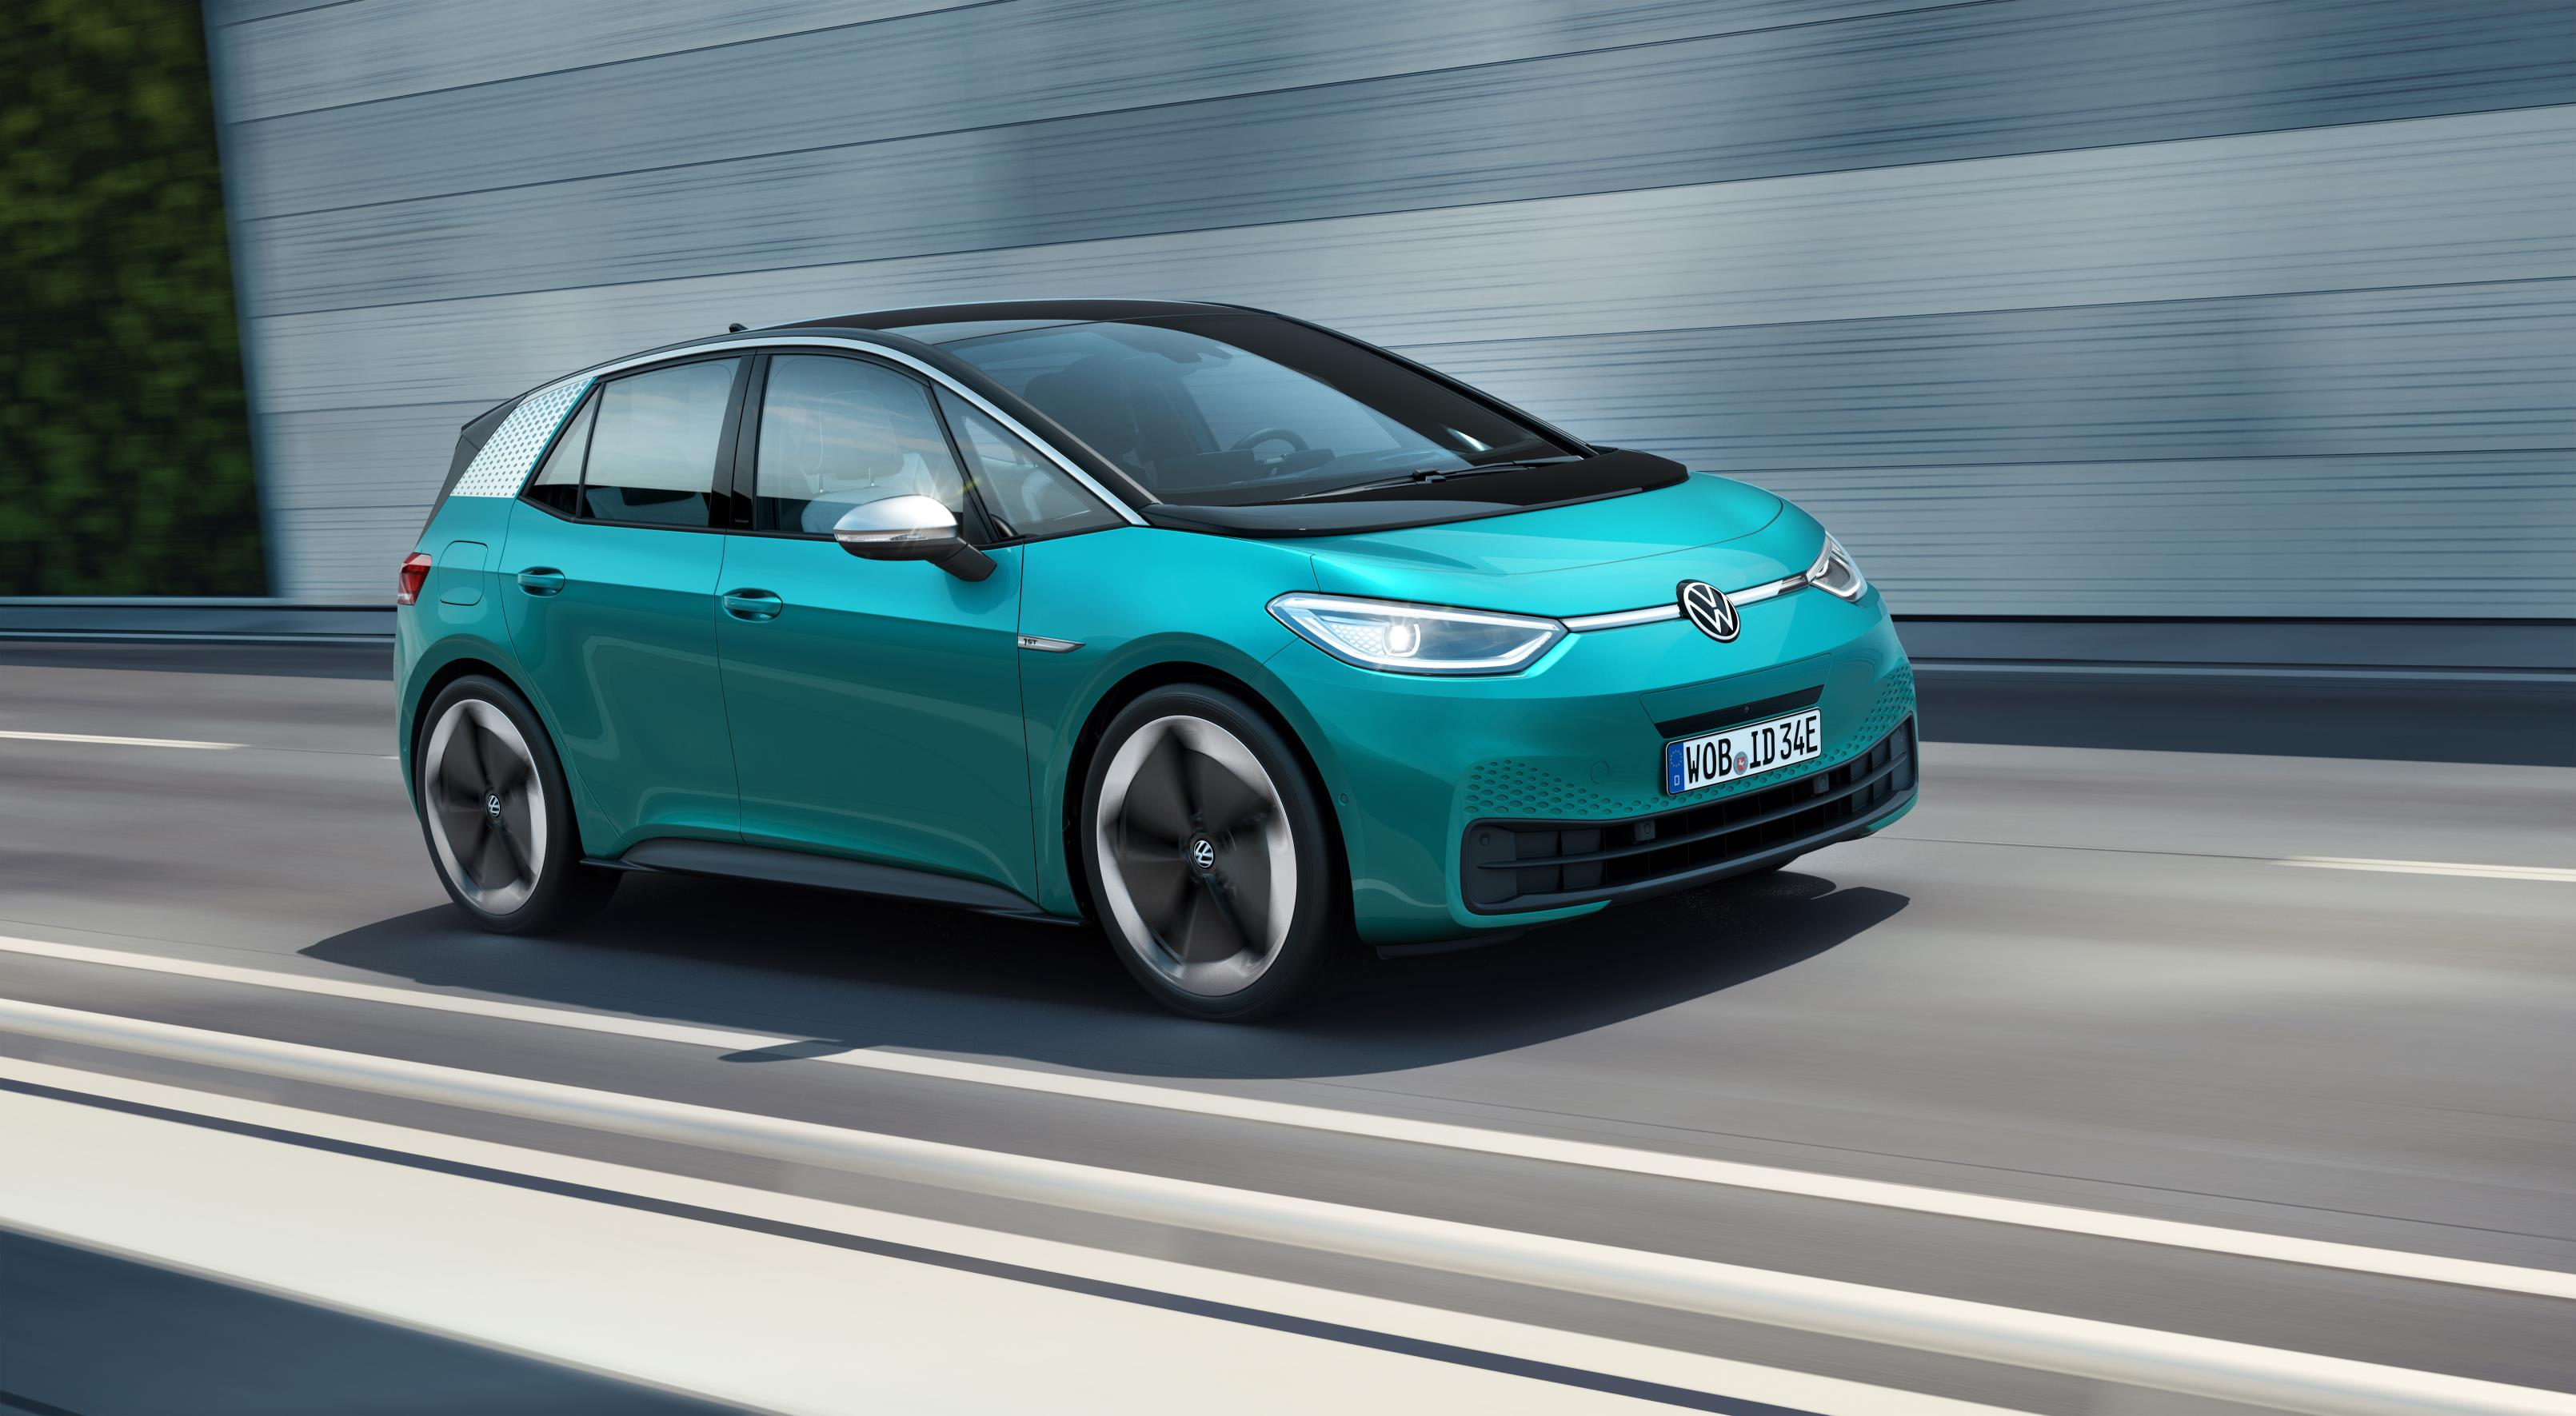 The ID 3 kicks off VW's electric car offensive